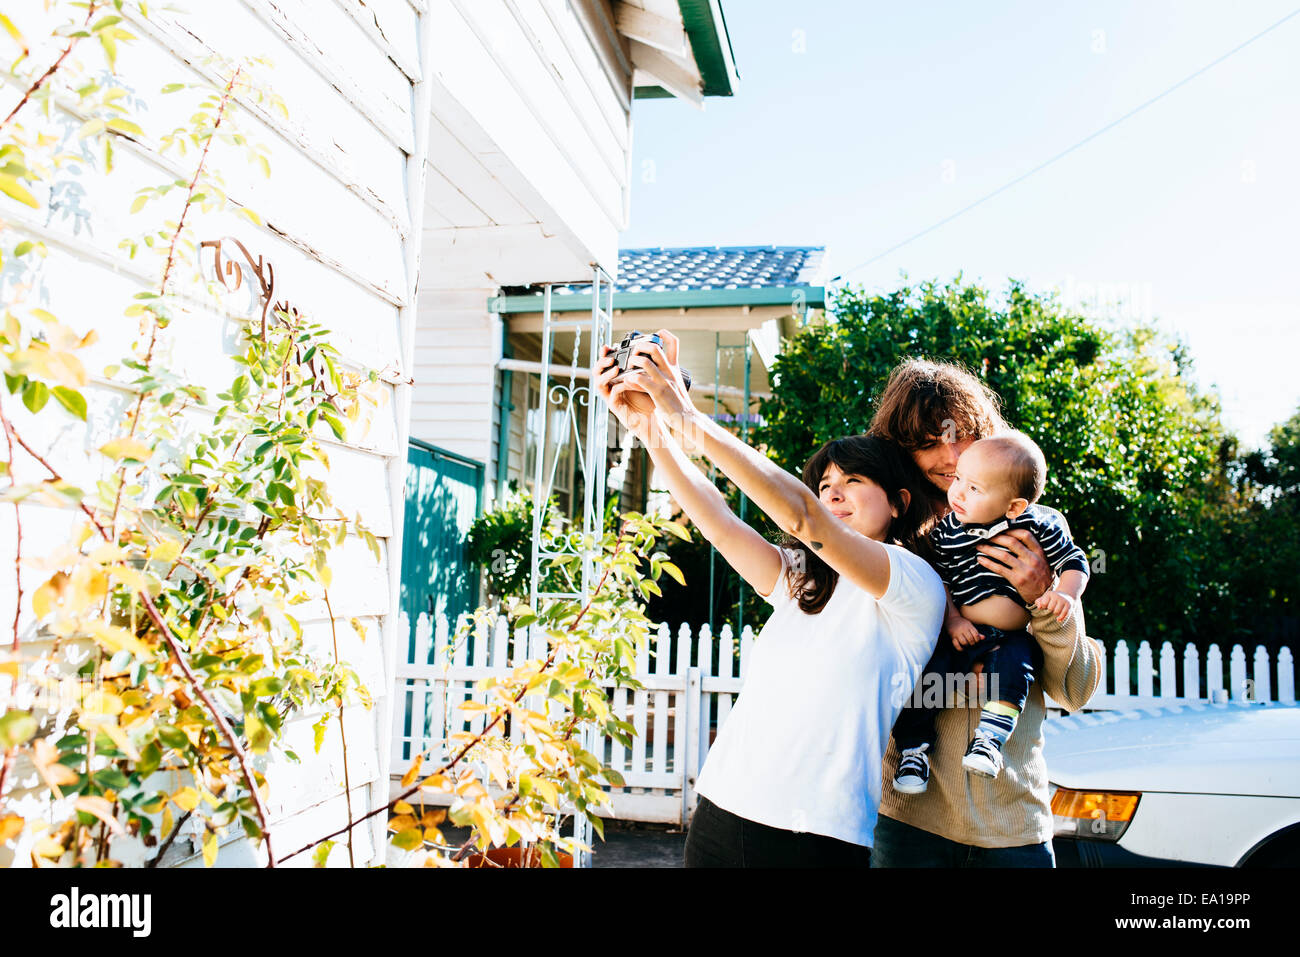 Woman taking family selfie at front of house - Stock Image